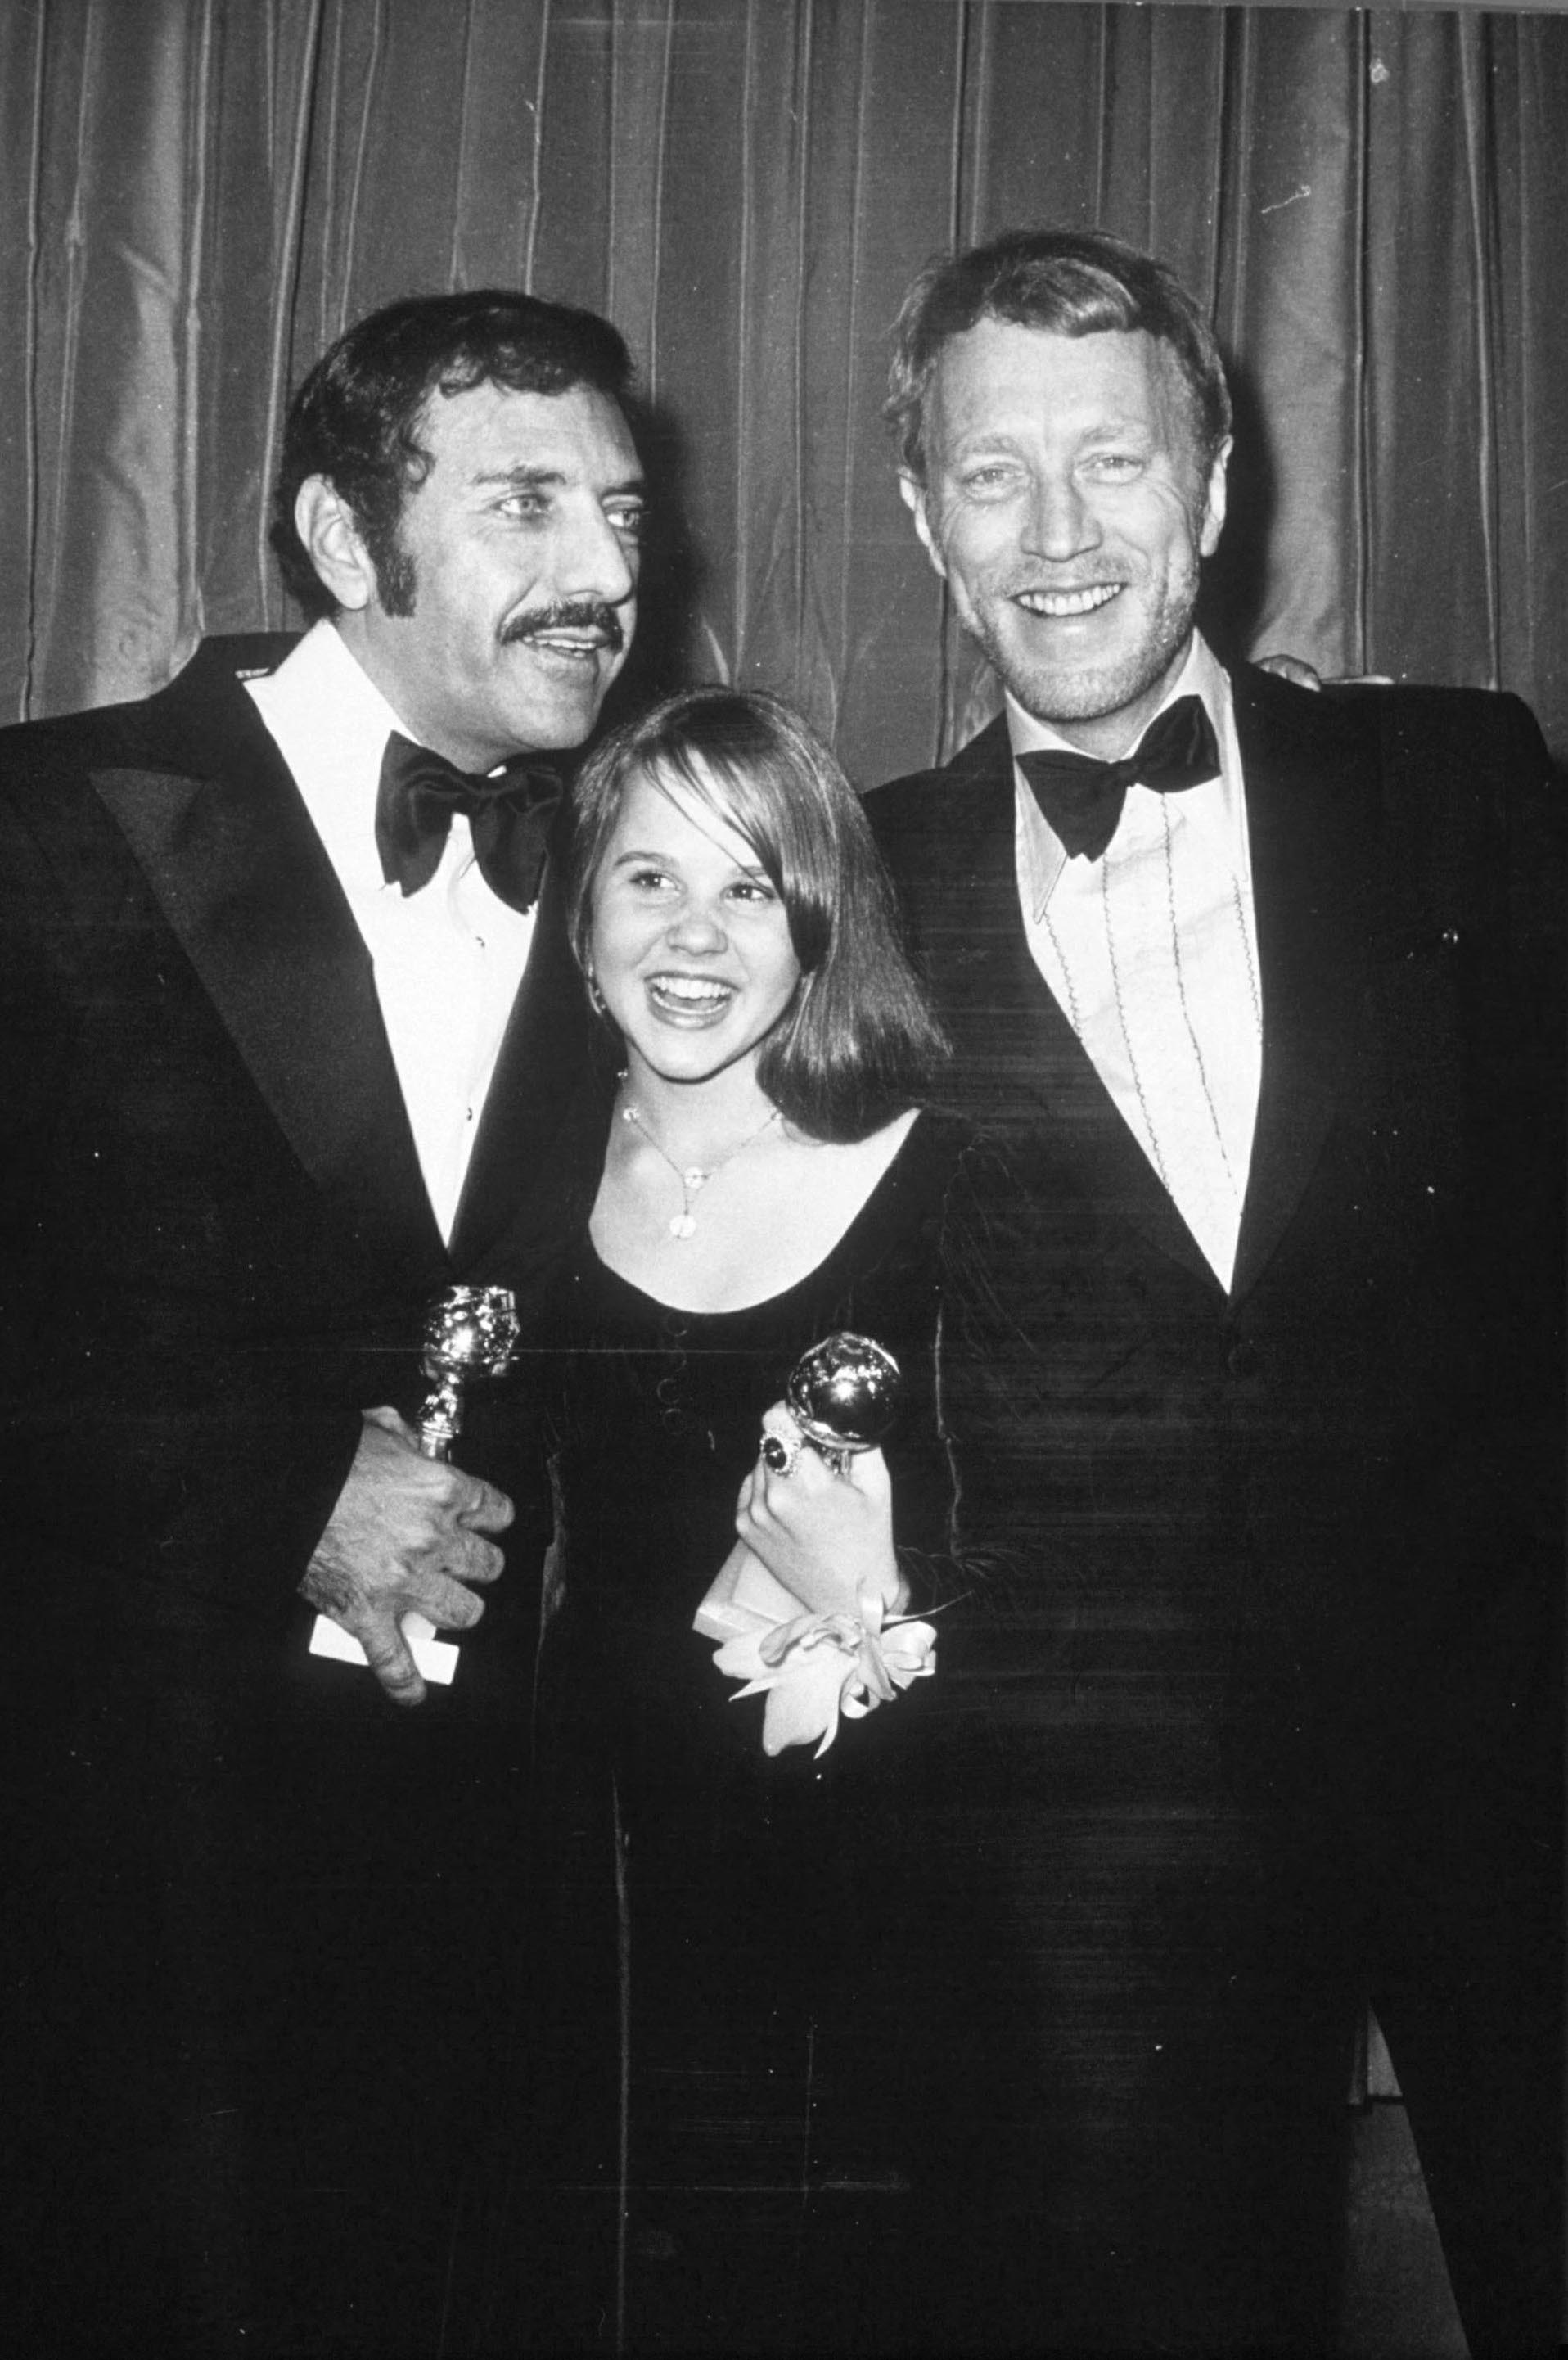 WILLIAM PETER BLATTY 'THE EXORCIST' AUTHOR WITH LINDA BLAIR 1974